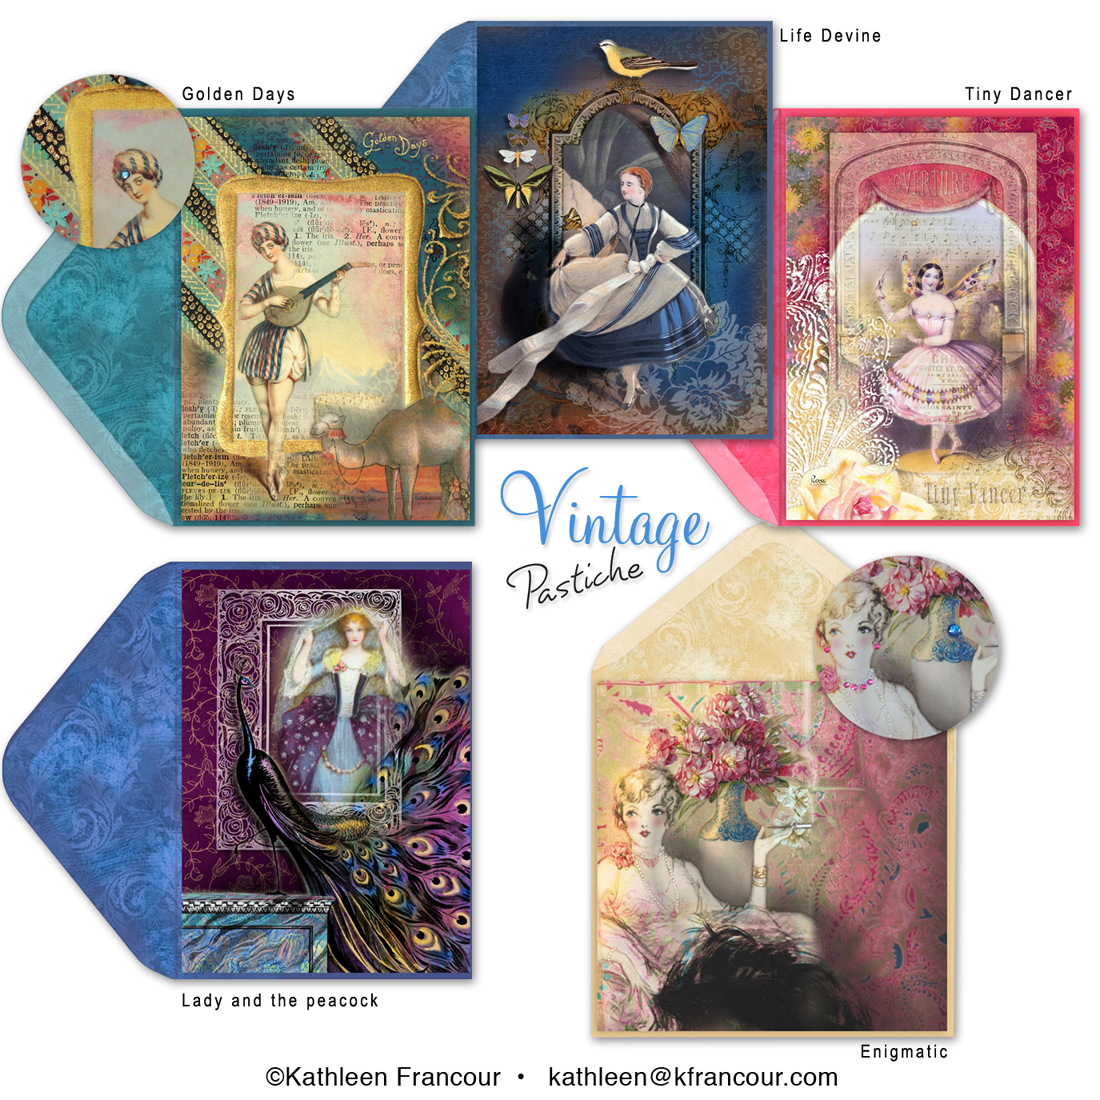 VINTAGE+PASTICHE+GALLERY+PG.-2.png